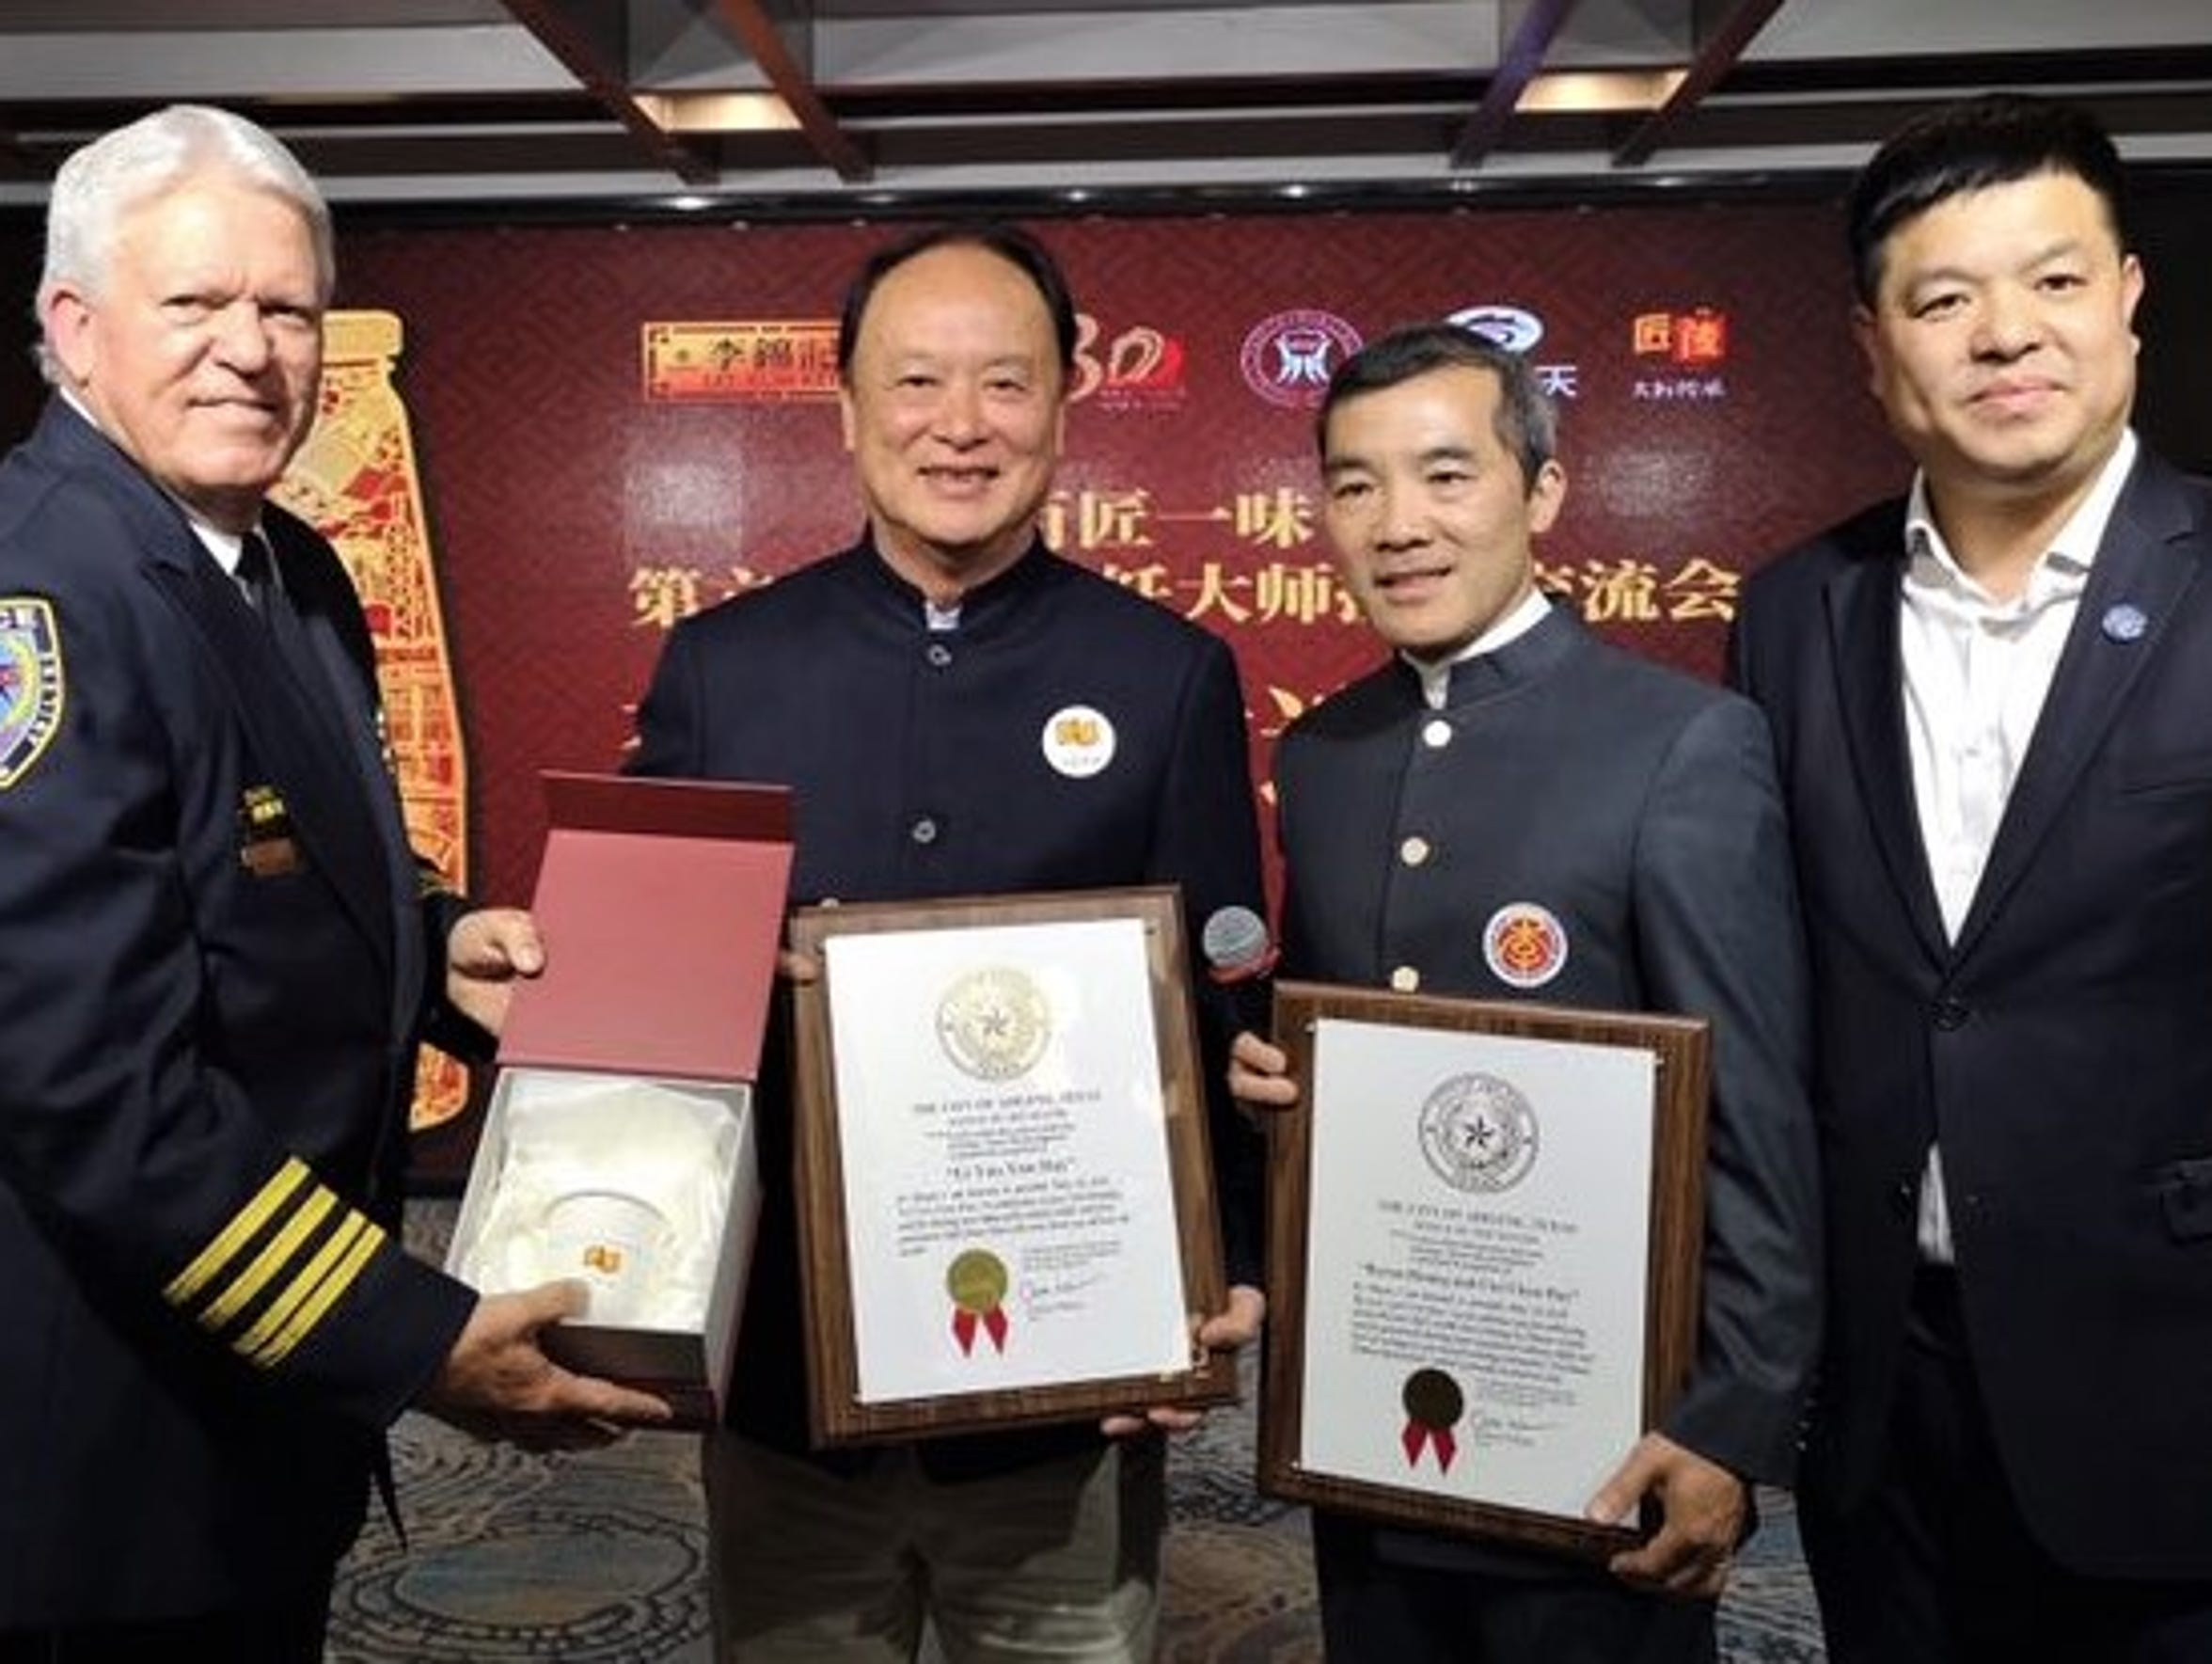 From left: Melvin Martin, Master Lee, Bryon Huang and